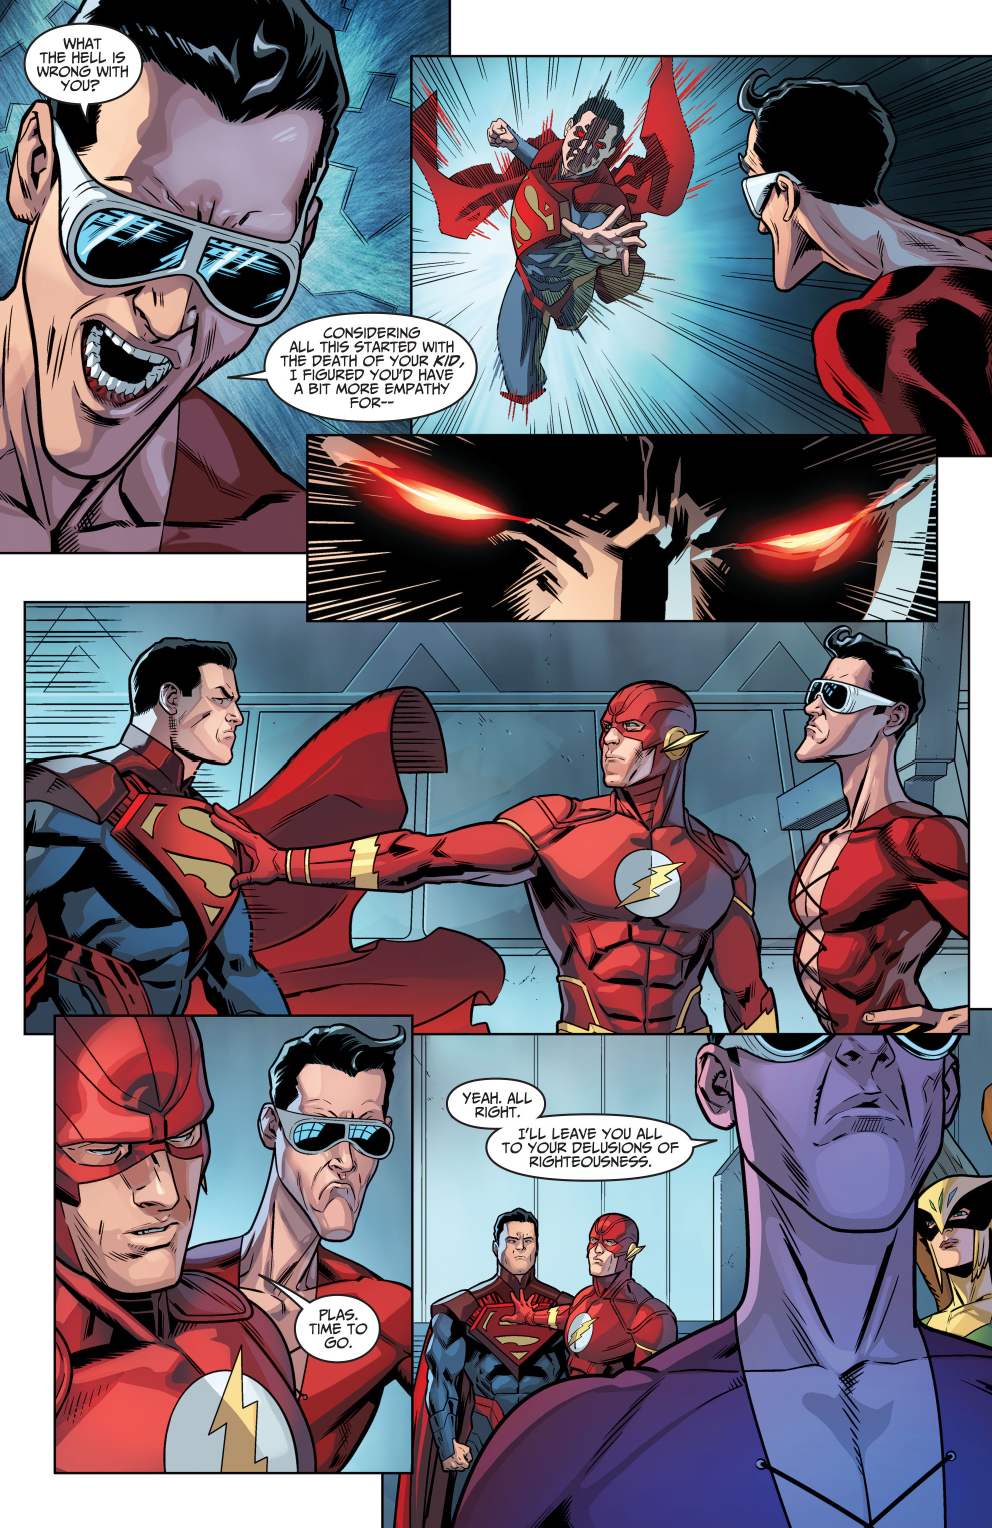 plastic man points out why superman is a villain